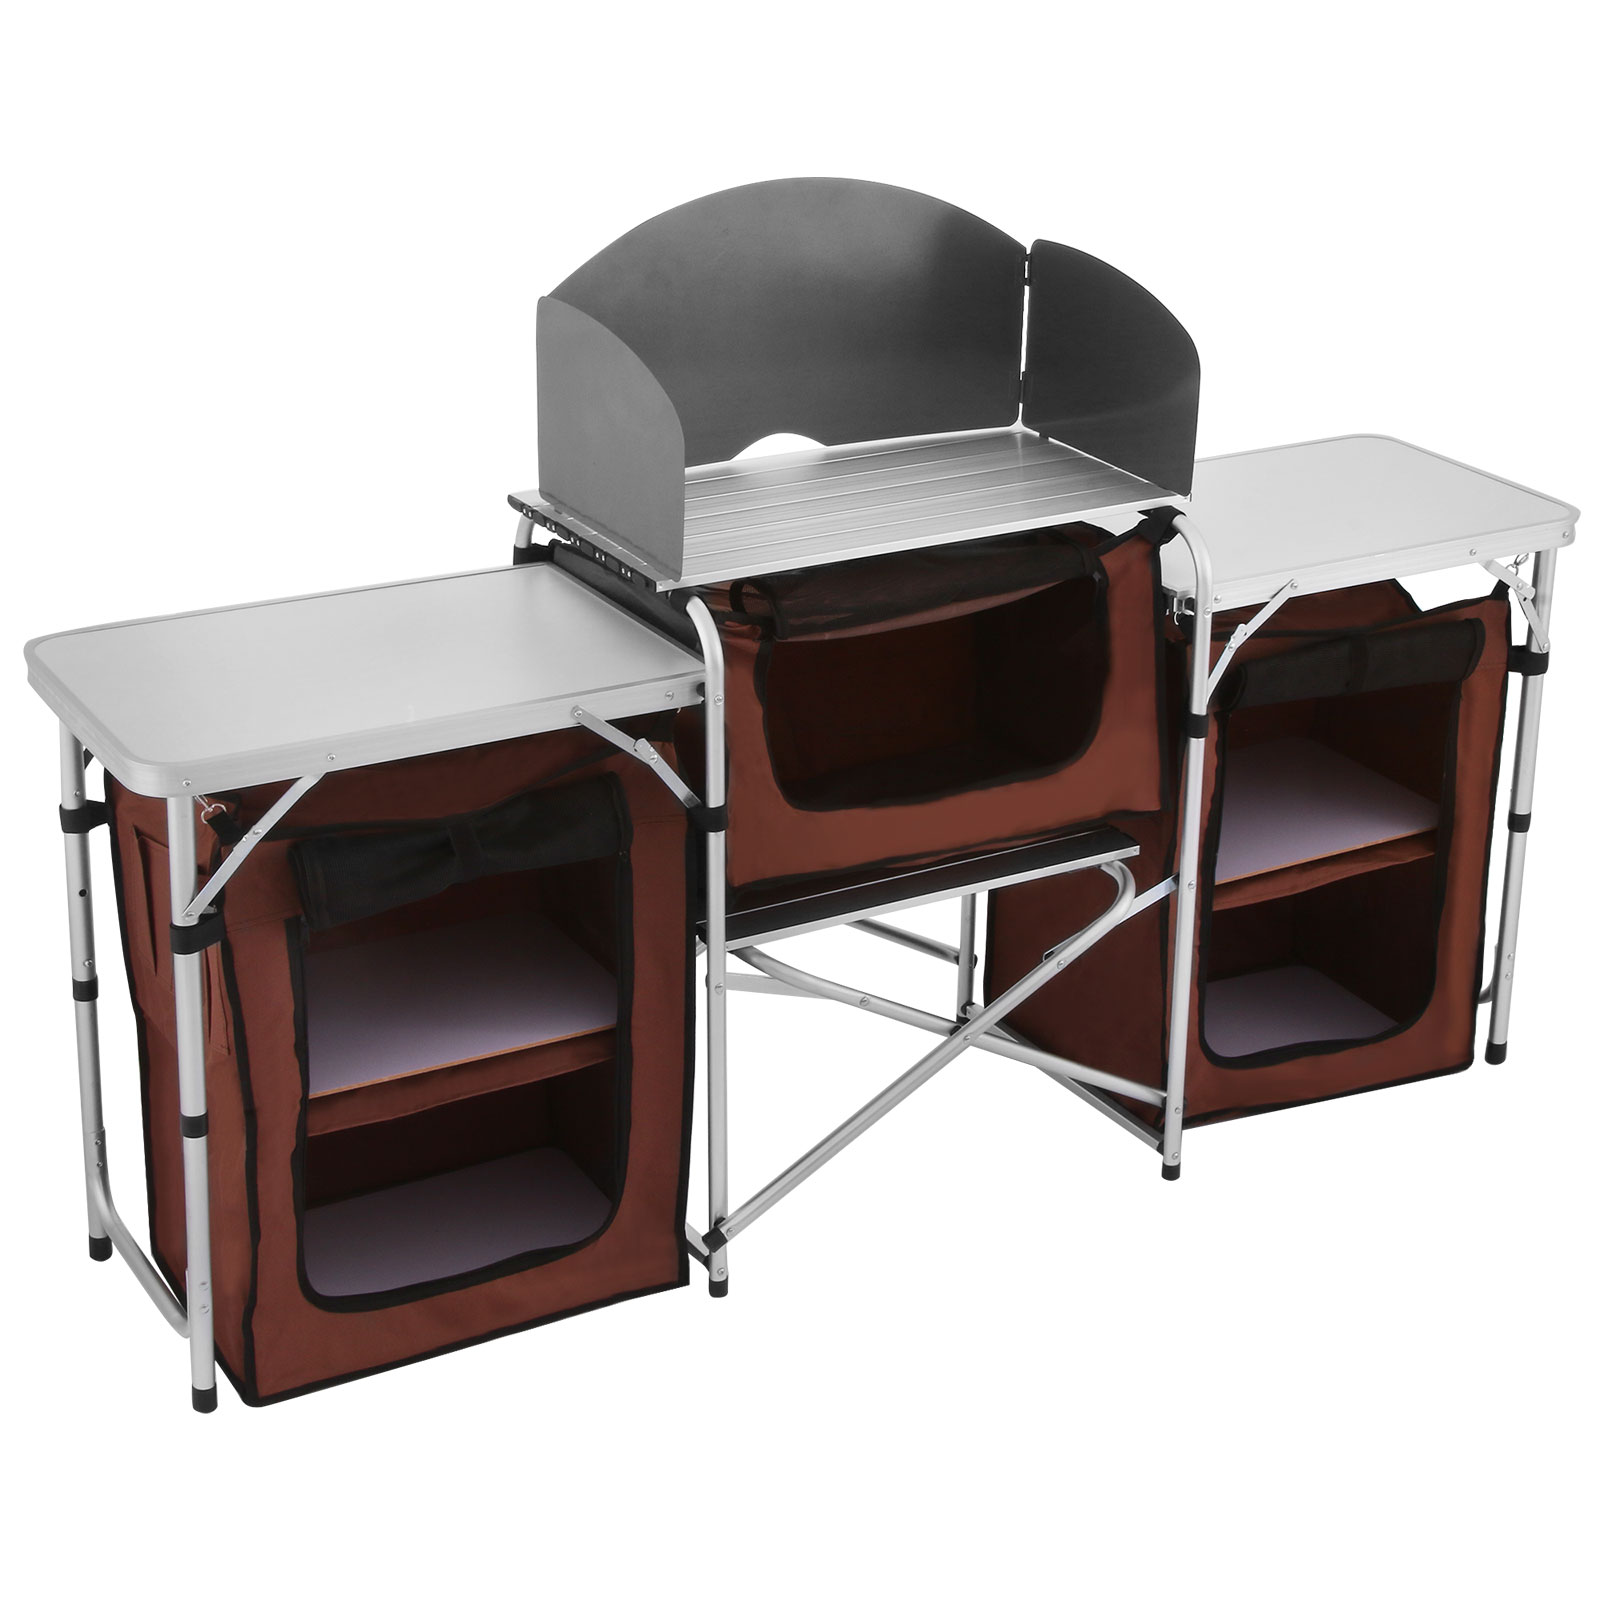 Fold Up Kitchen Table: CAMPING KITCHEN COOKING TABLE FOOD PREP FOOD STORAGE